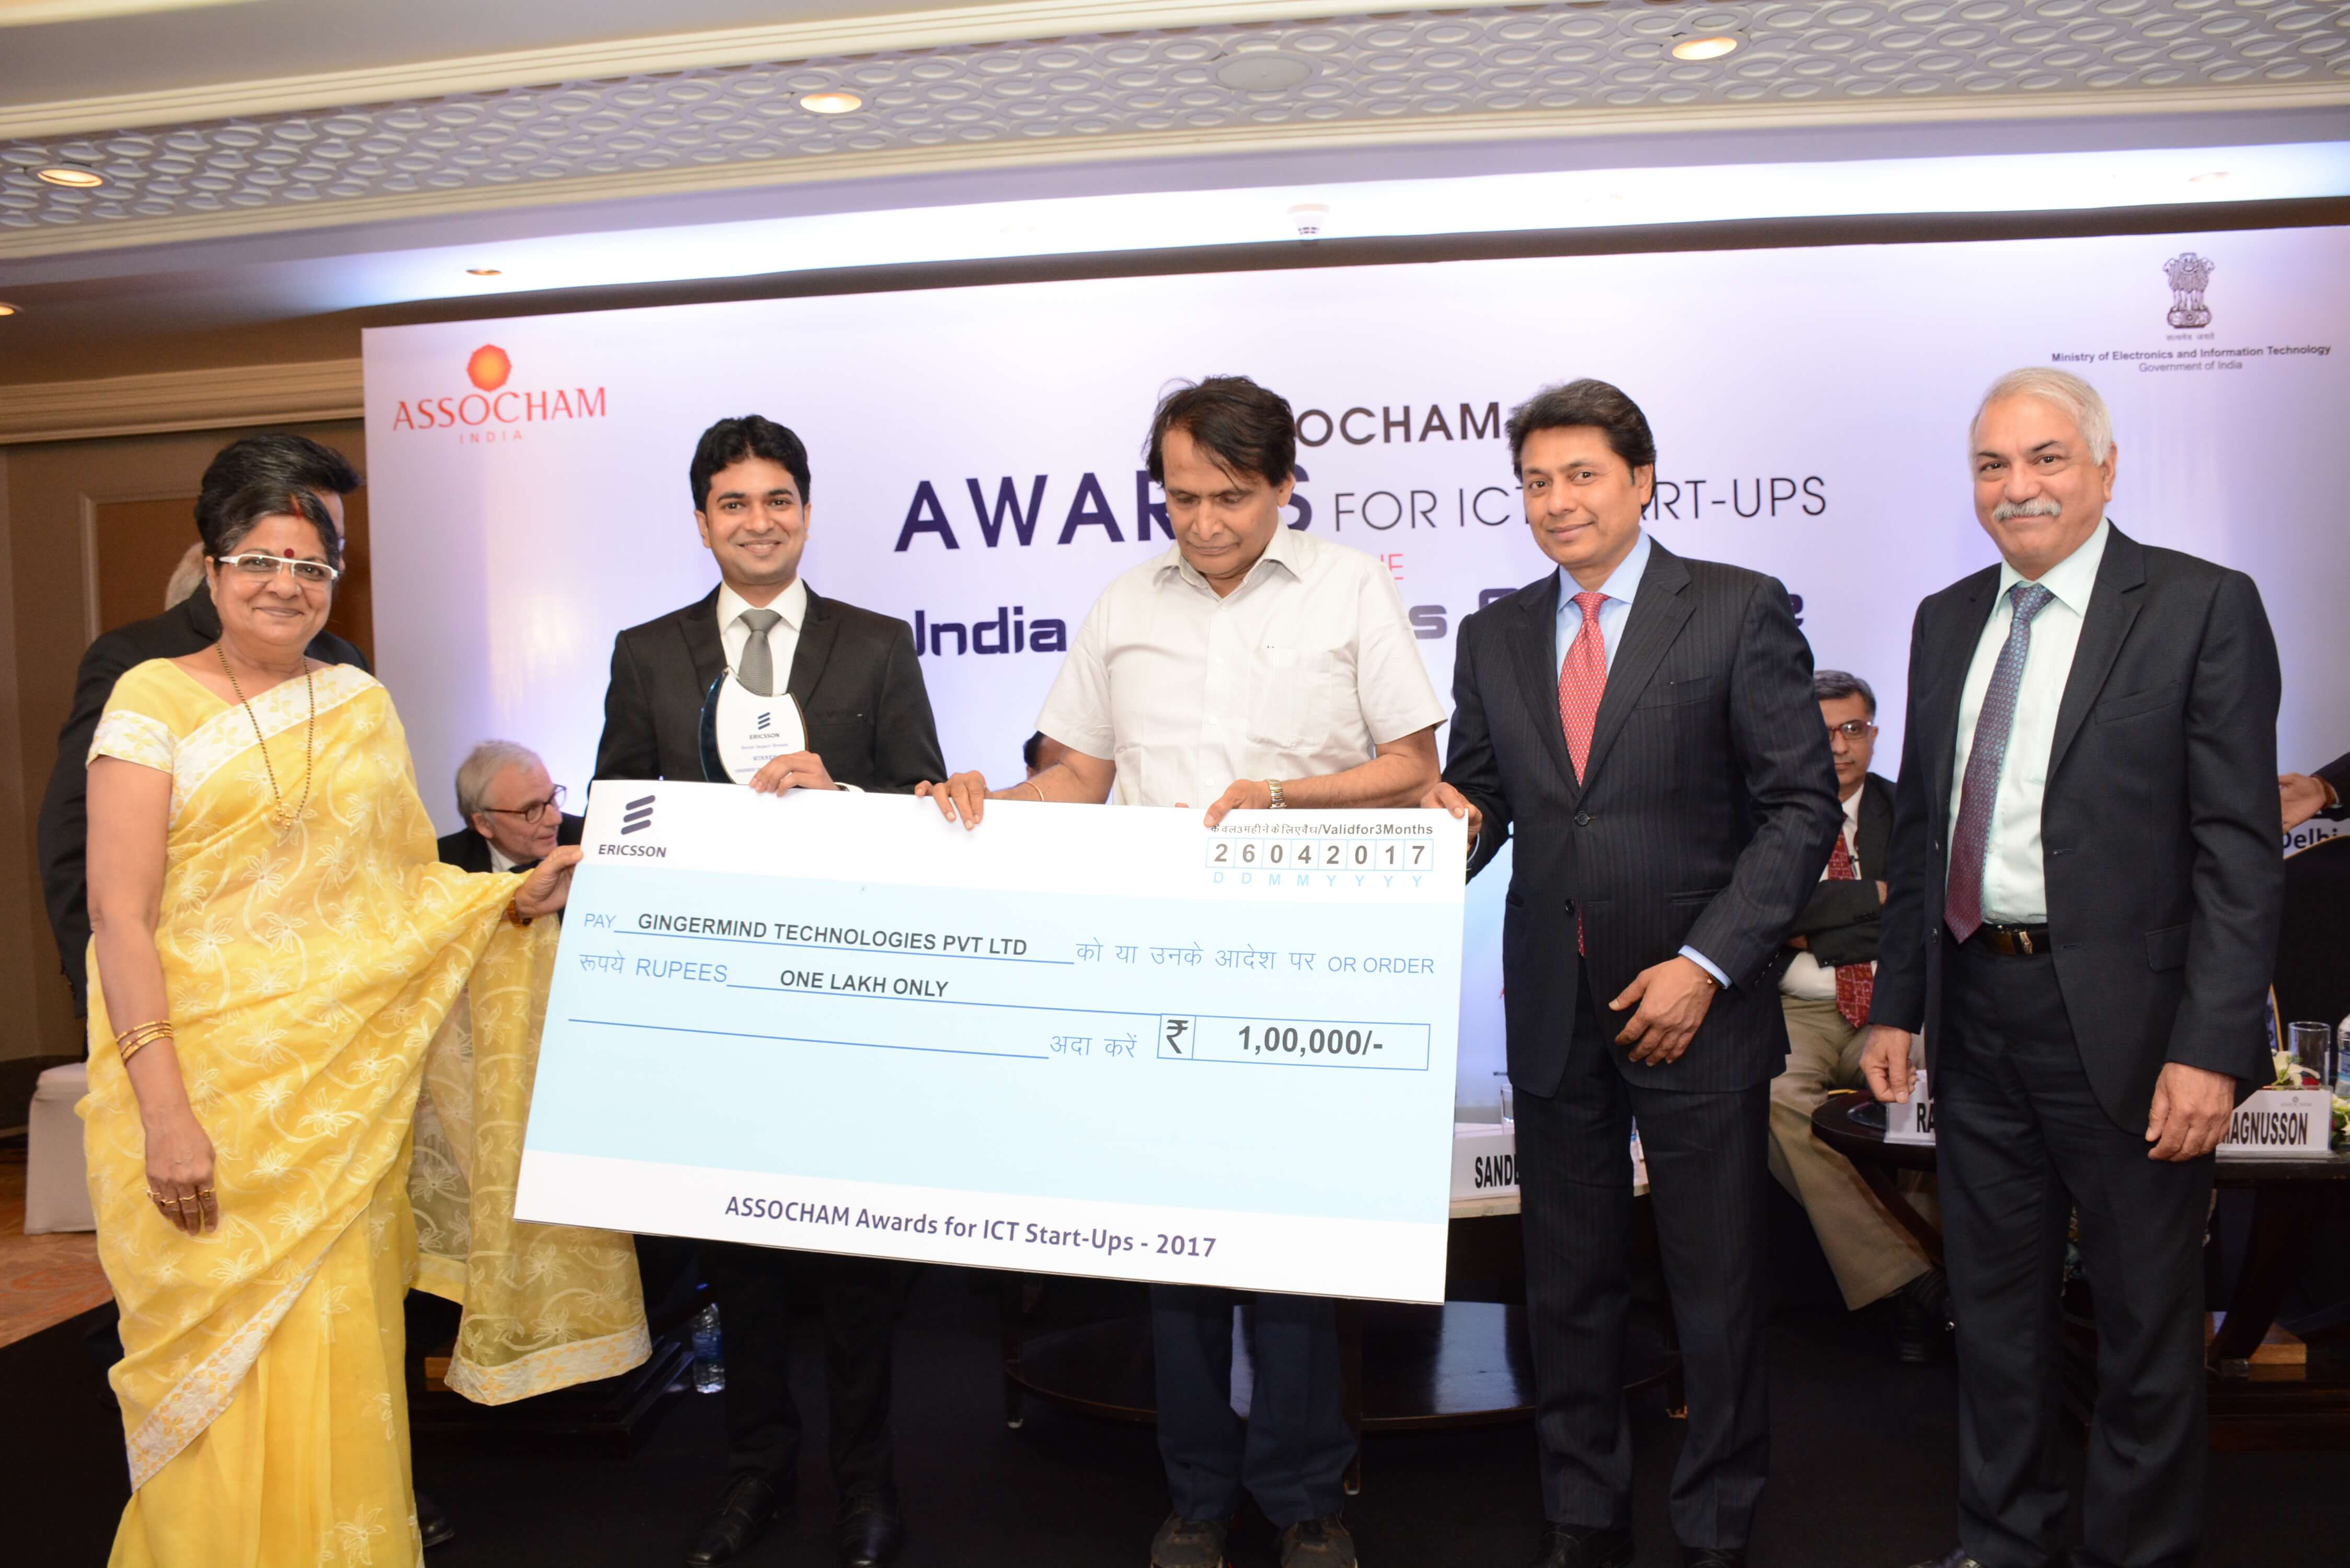 Our founder Gaurav Mittal receiving the ASSOCHAM Award from Honourable Minister of Railways Mr. Suresh Prabhu at India Innovates Conclave on the eve of World IP day